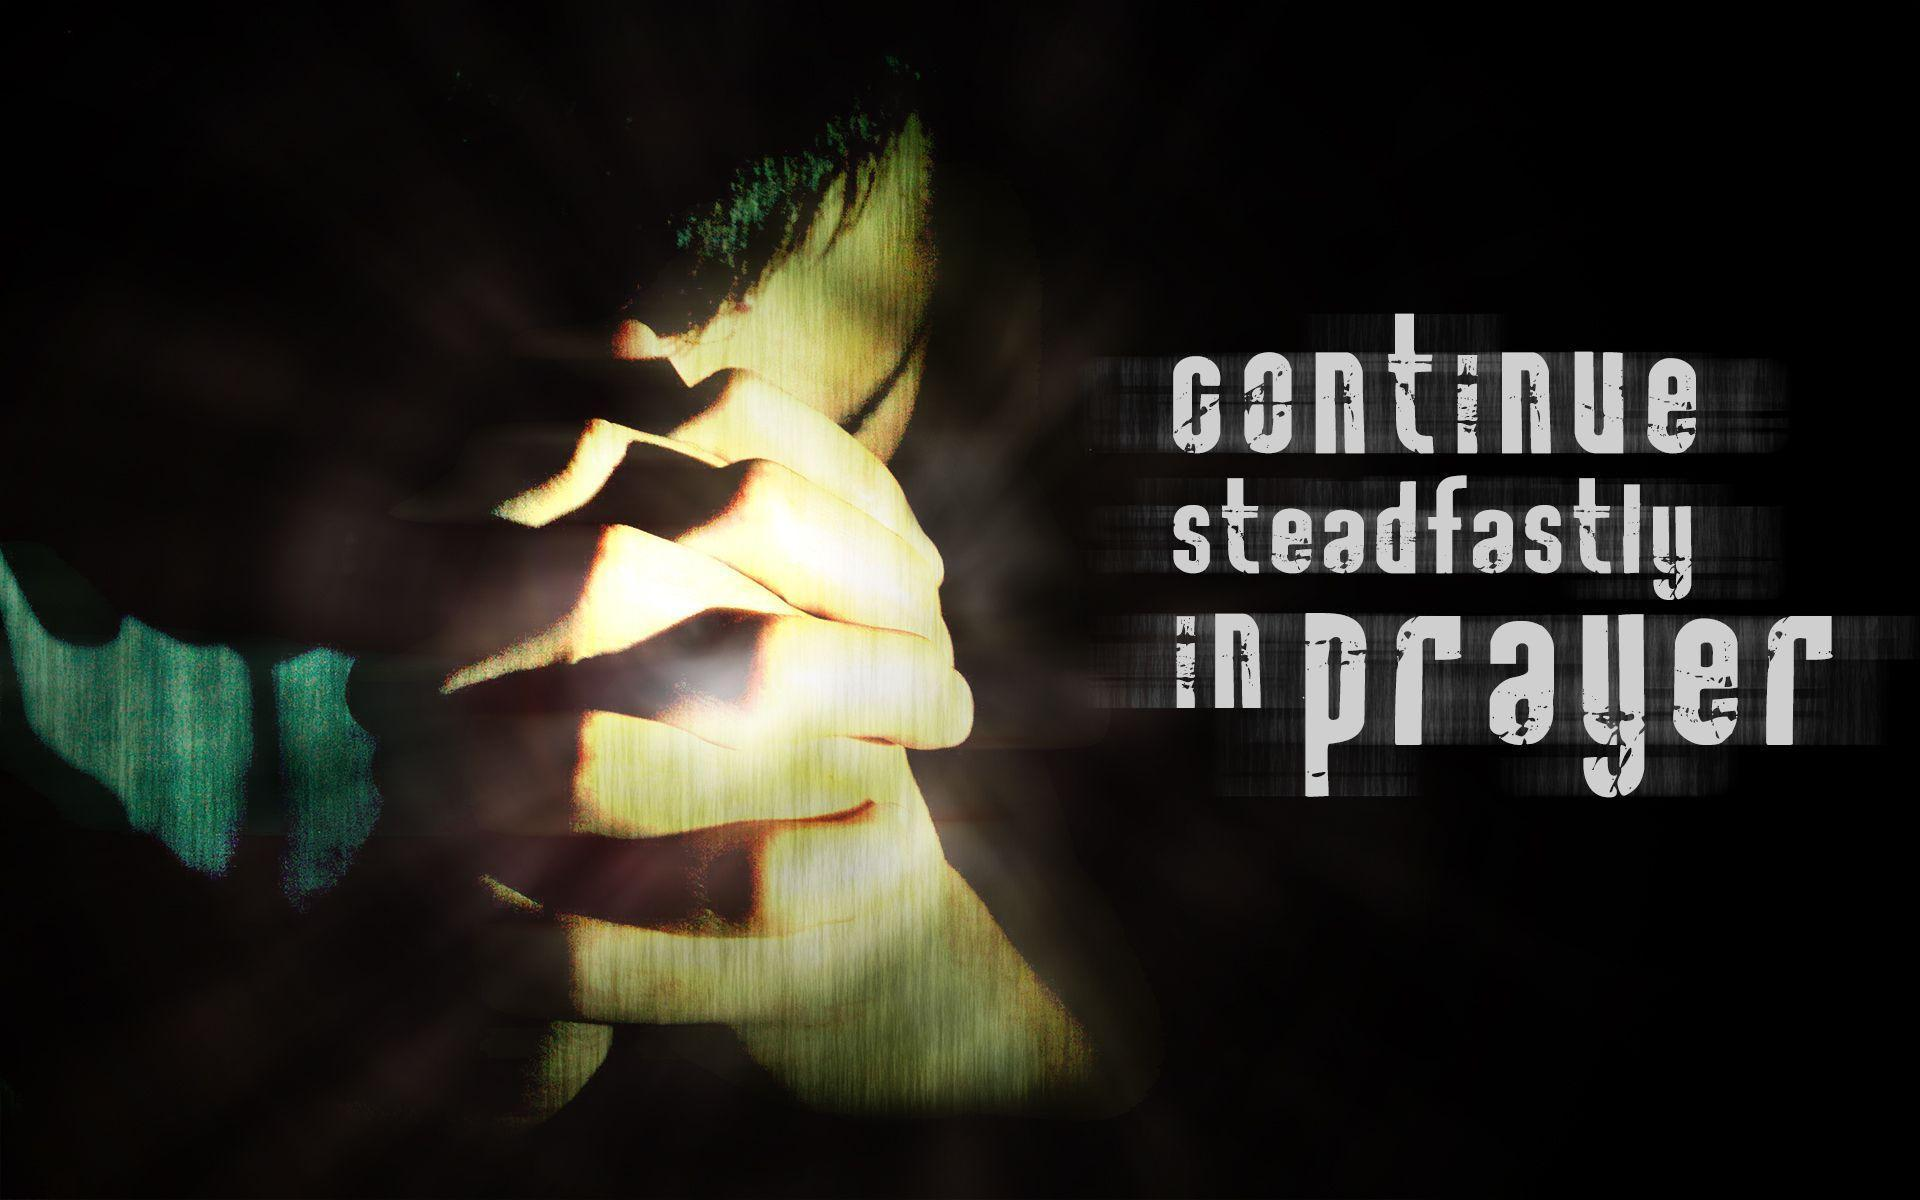 Christian Wallpapers - Full HD wallpaper search - page 3